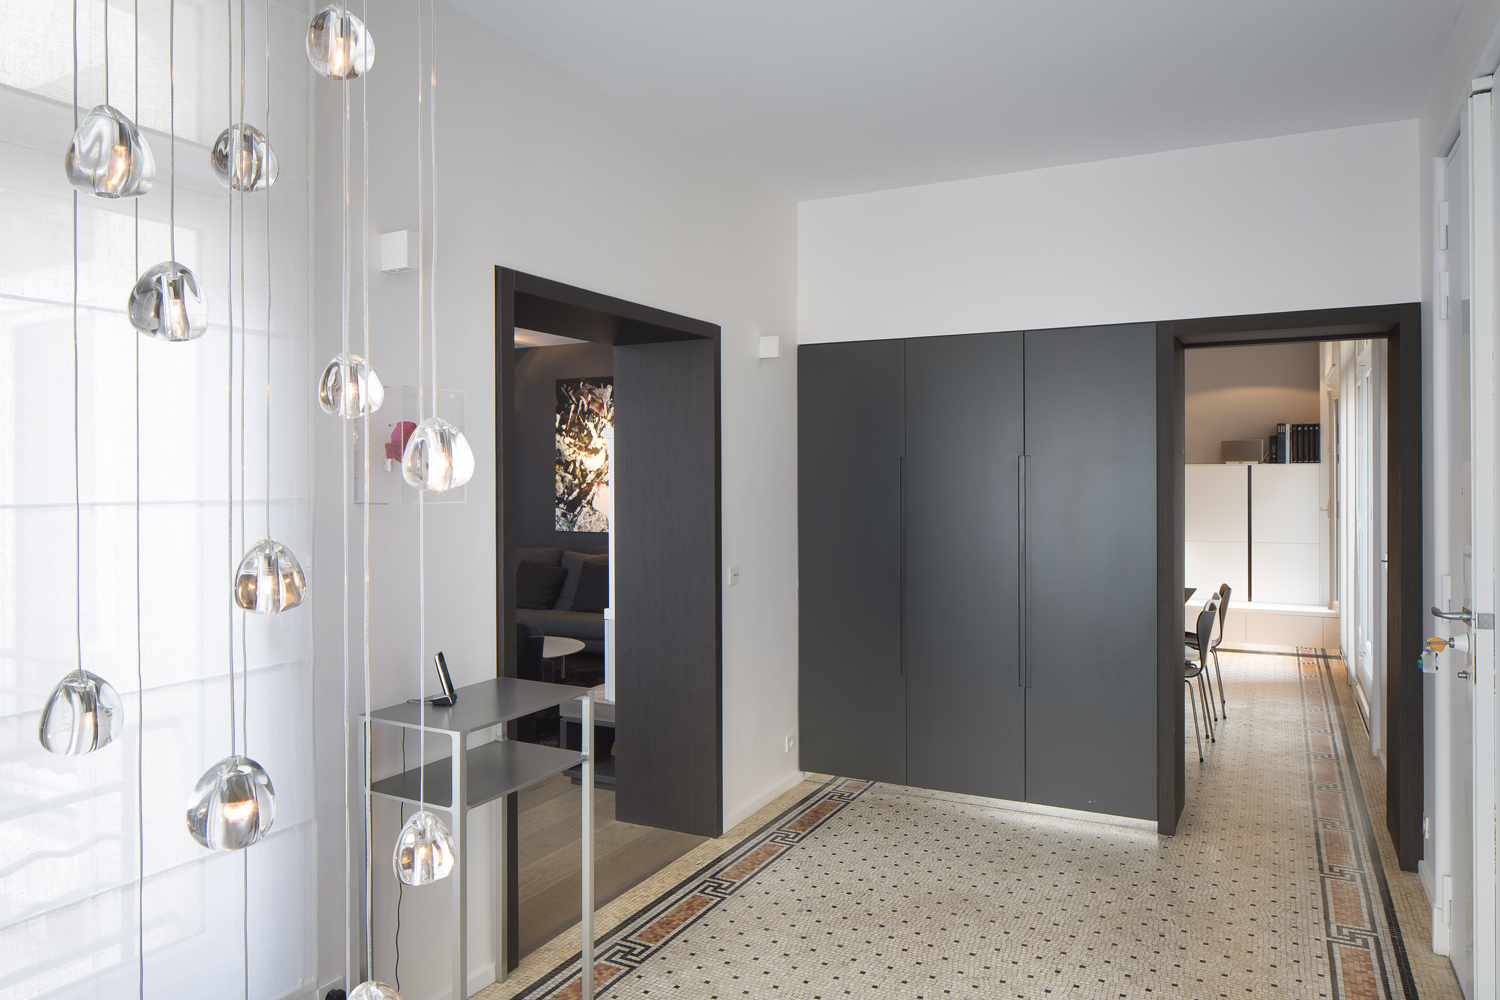 Avant apr stexier soulas architectes interieur paris for Amenagement hall d entree